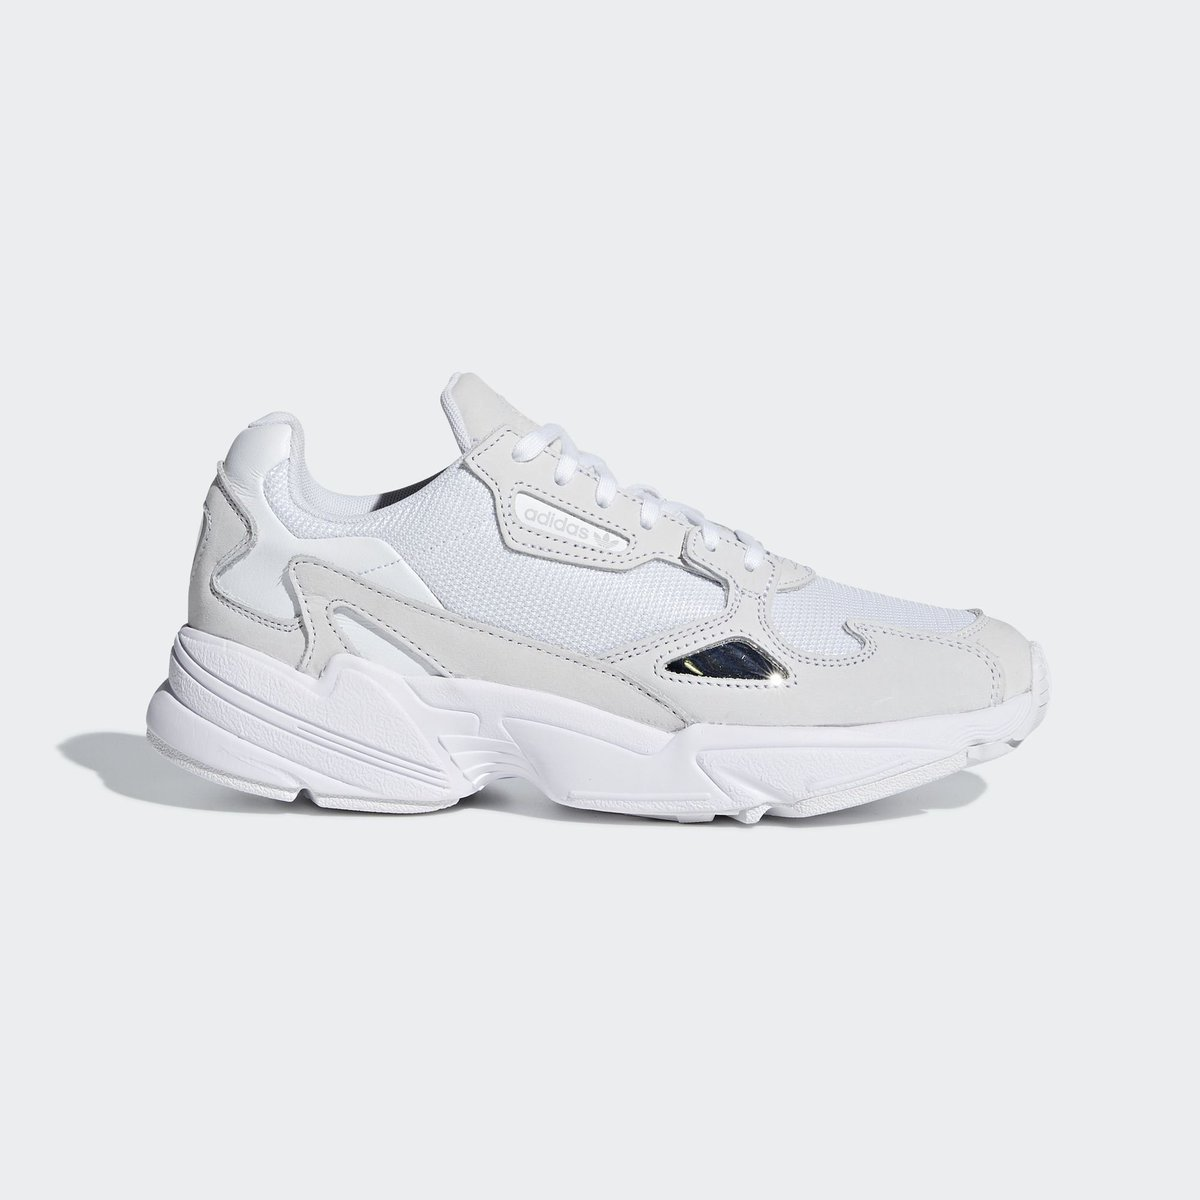 New adidas Falcon W colorways are now